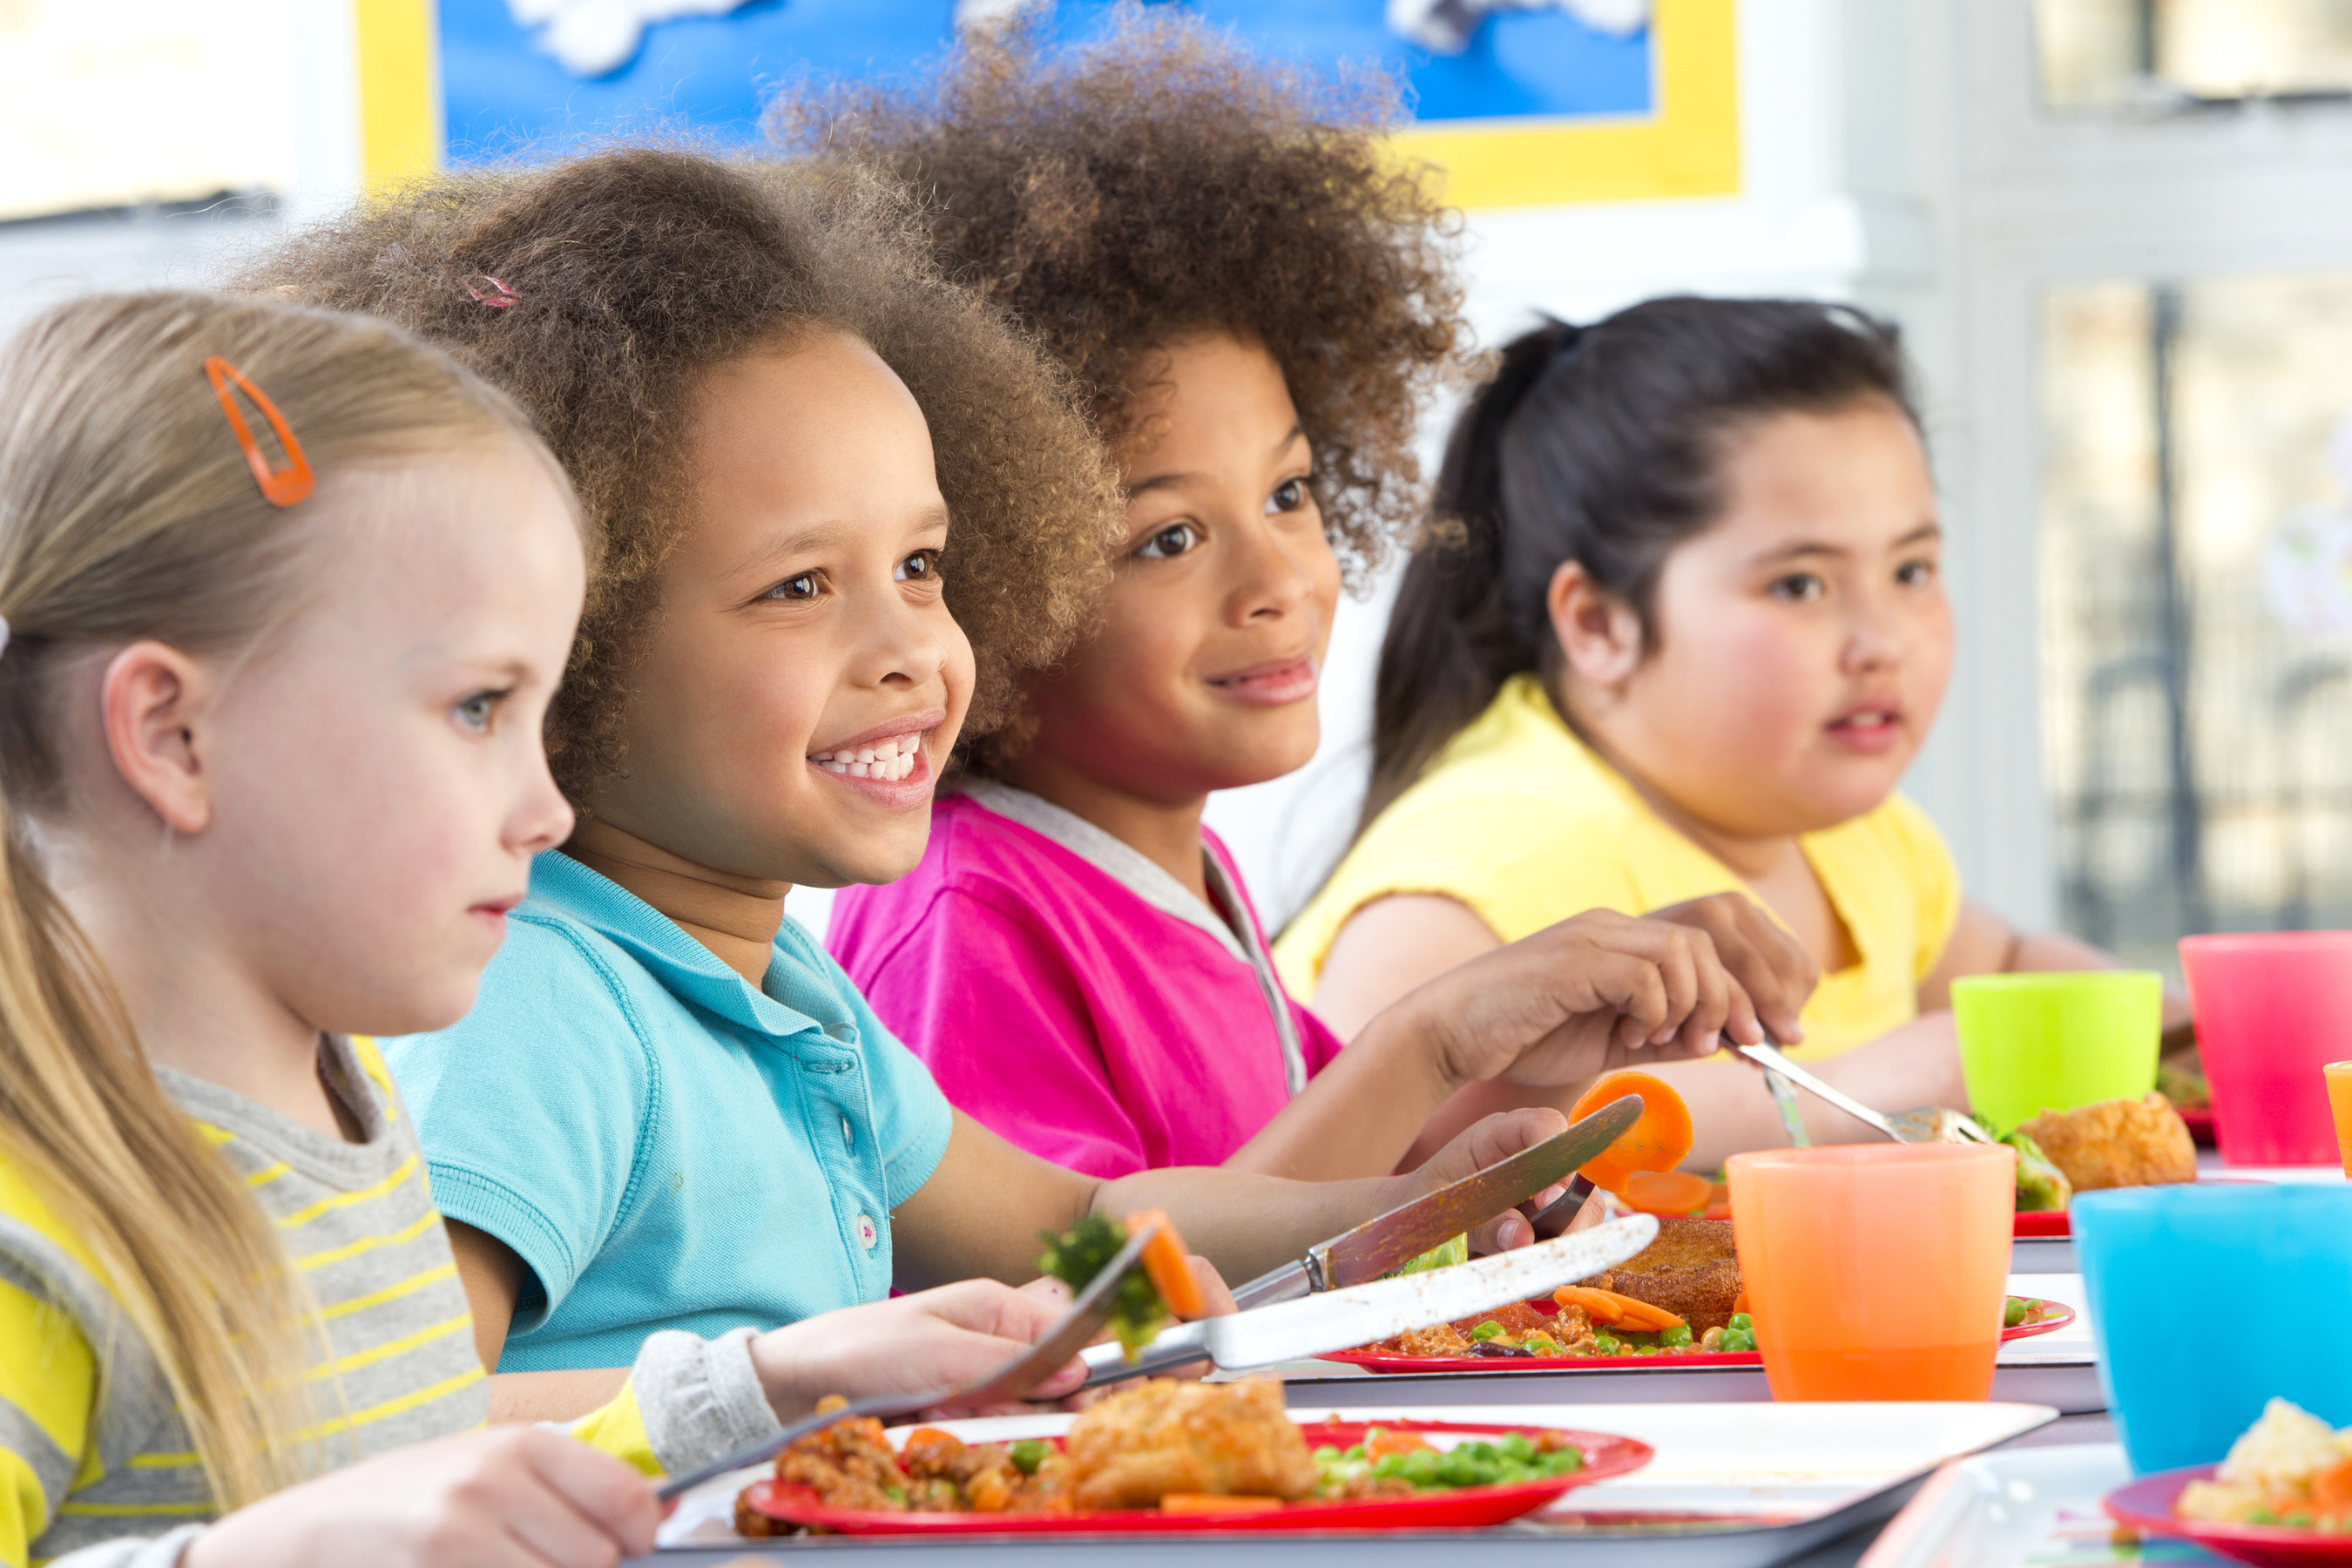 What's for lunch? Our kids deserve better.